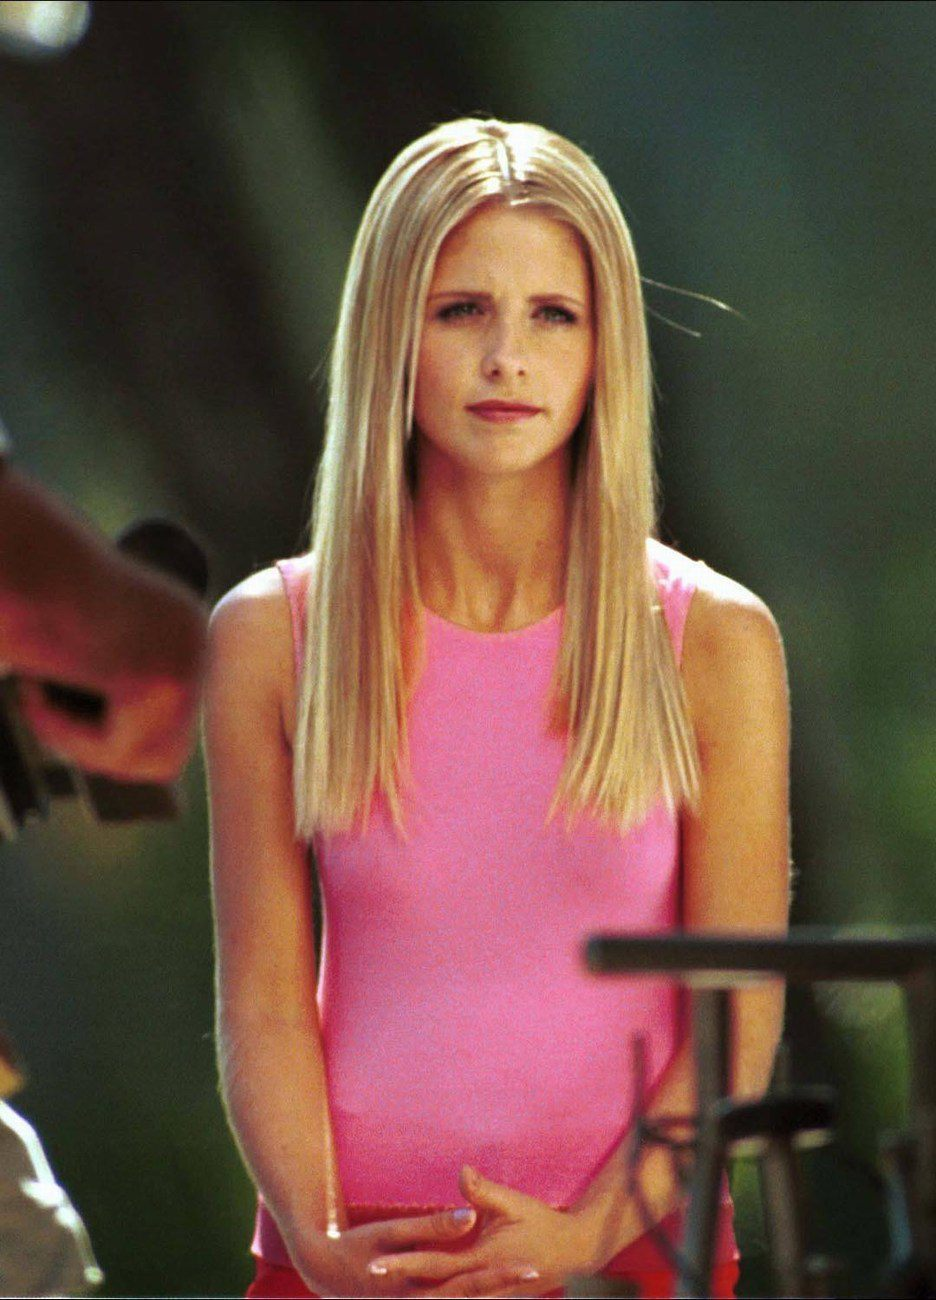 SMG - Maybelline